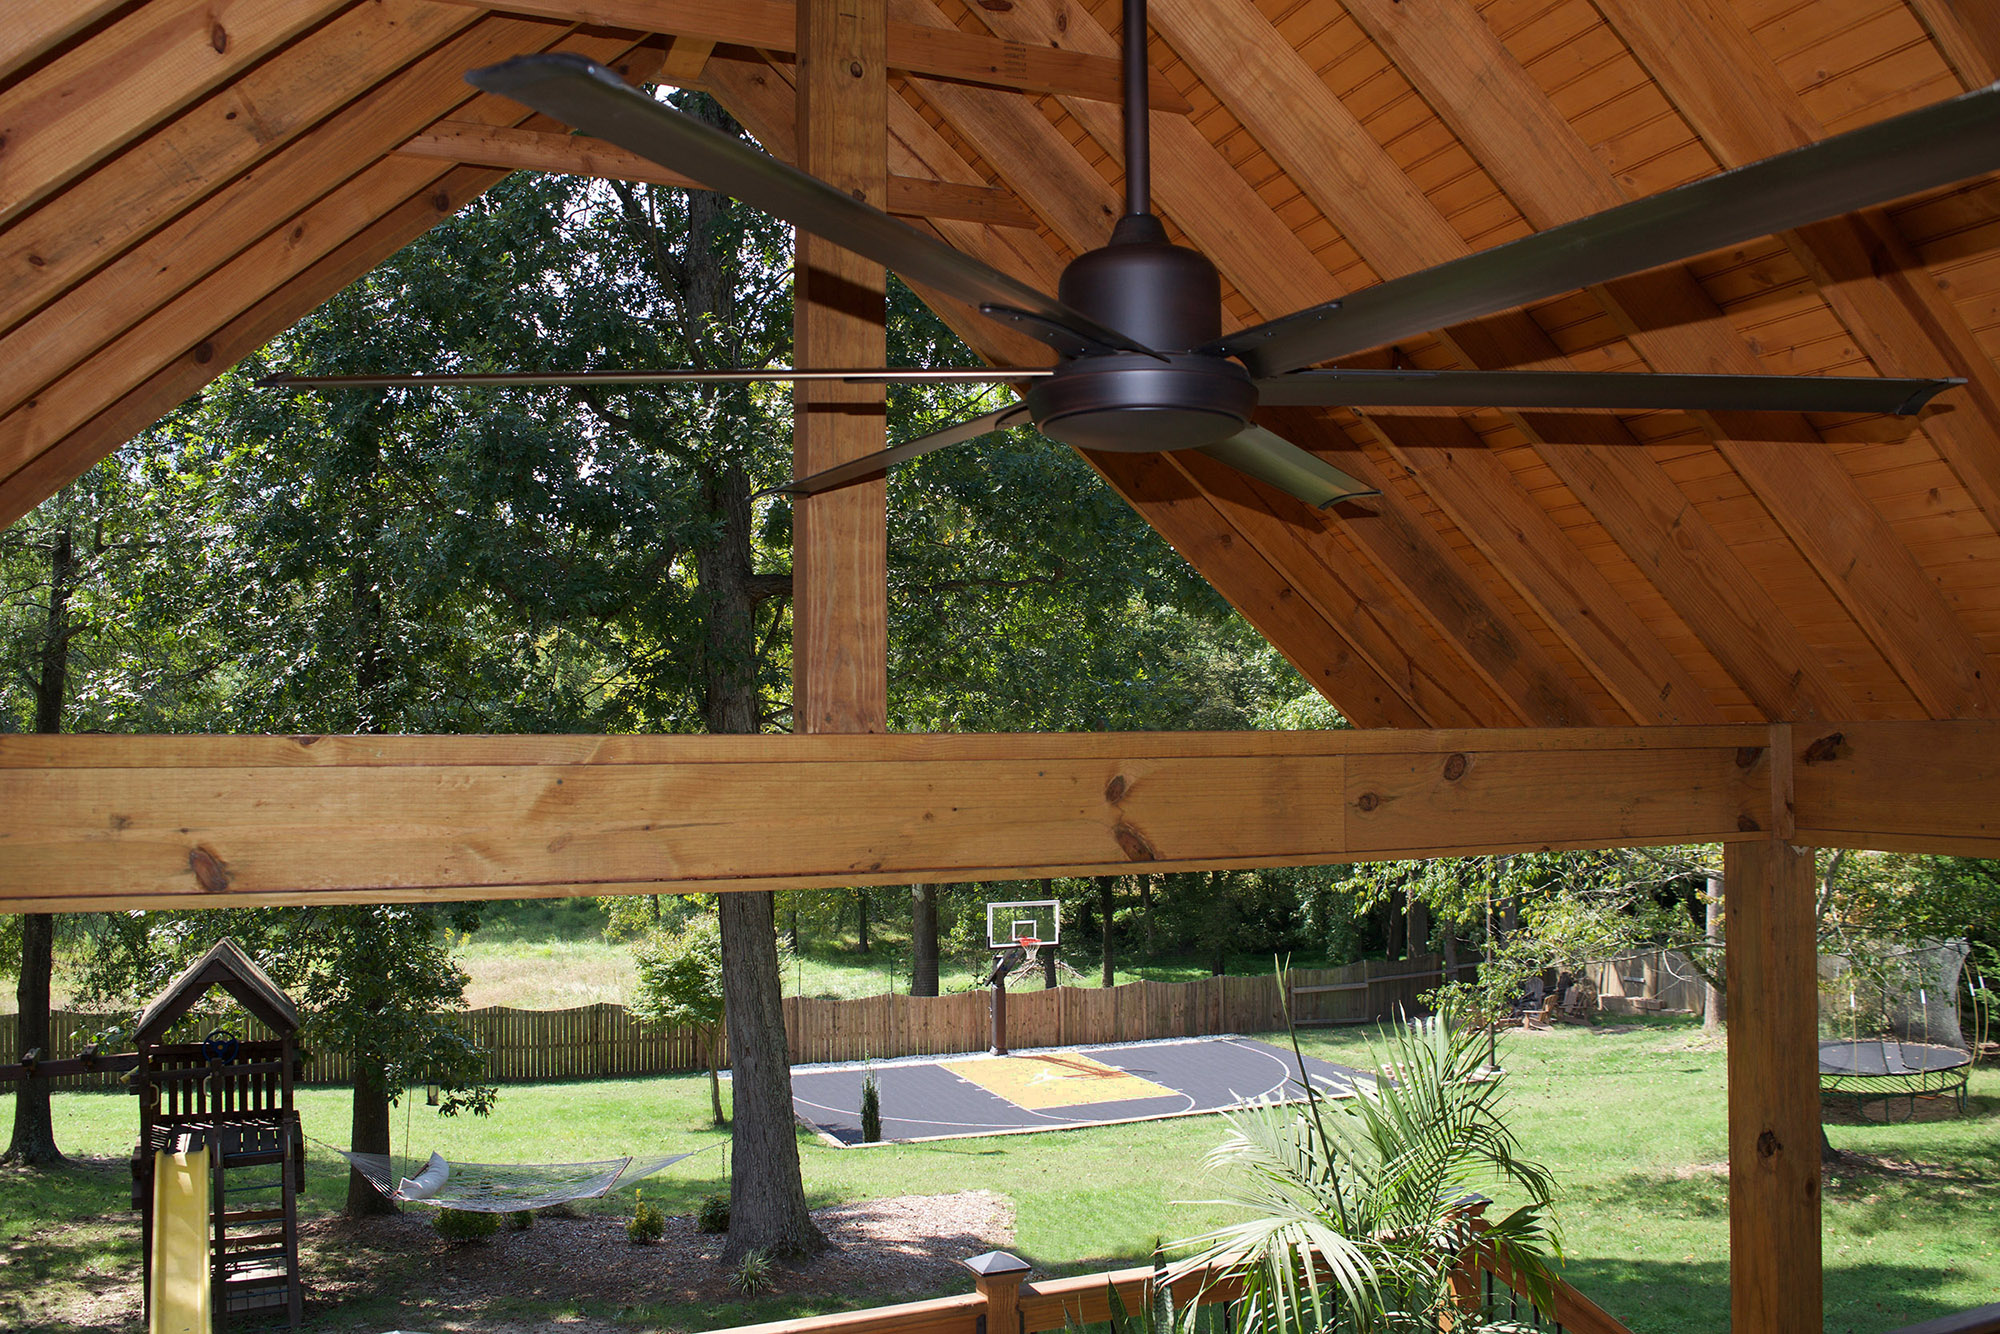 Enjoy Your Garden More Comfortably From Your Outdoor Living Space